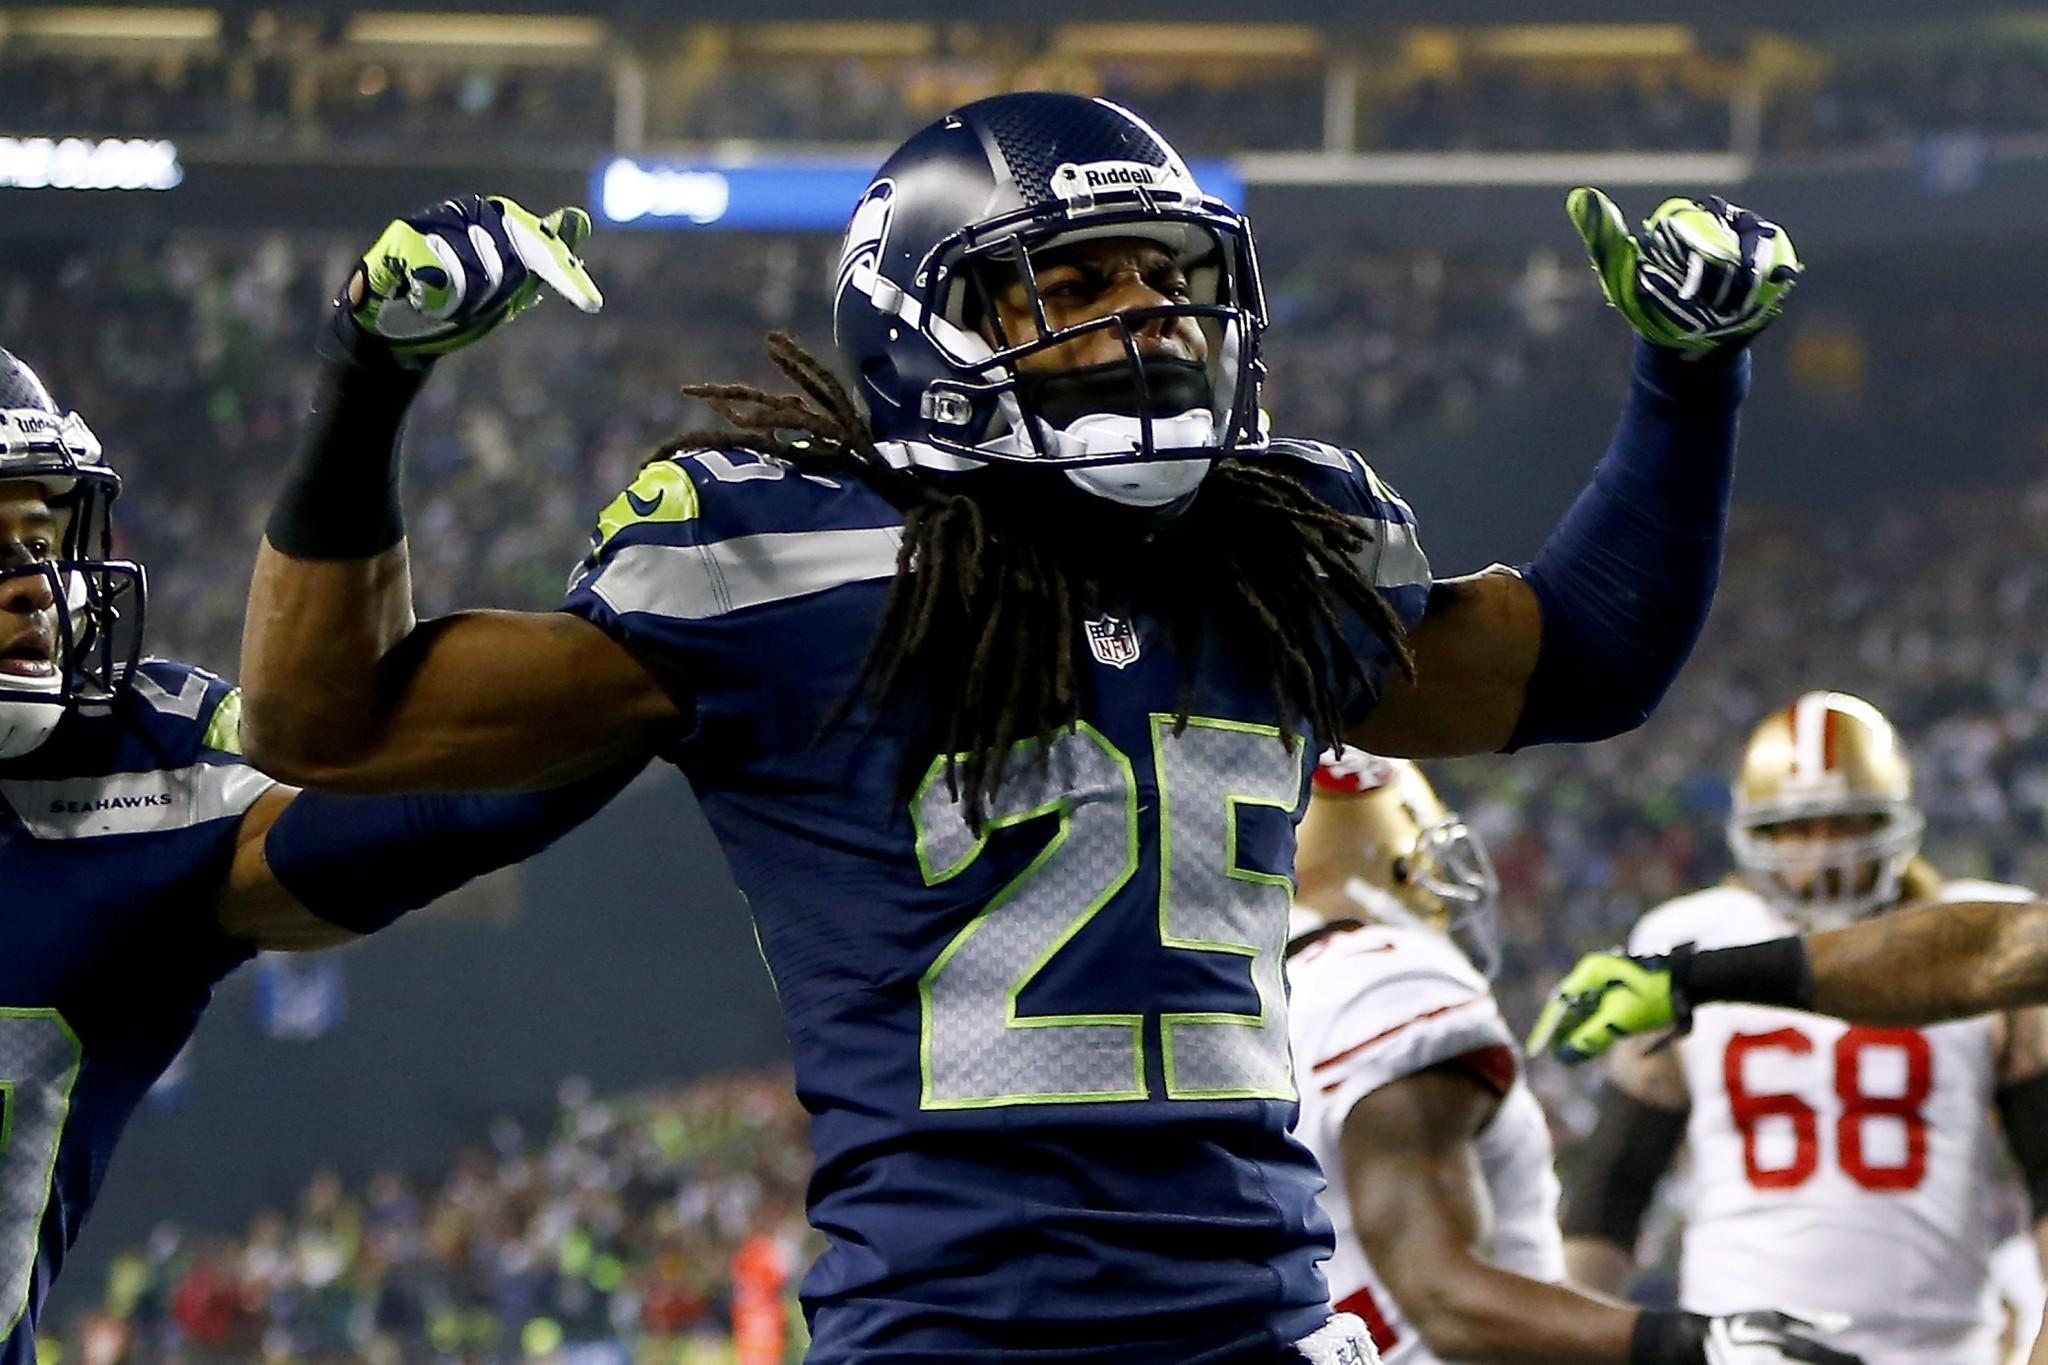 Cornerback Richard Sherman of the Seattle Seahawks celebrates after he tips the ball leading to an intereption by outside linebacker Malcolm Smith #53 to clinch the victory for the Seahawks against the San Francisco 49ers during the 2014 NFC Championship at CenturyLink Field.